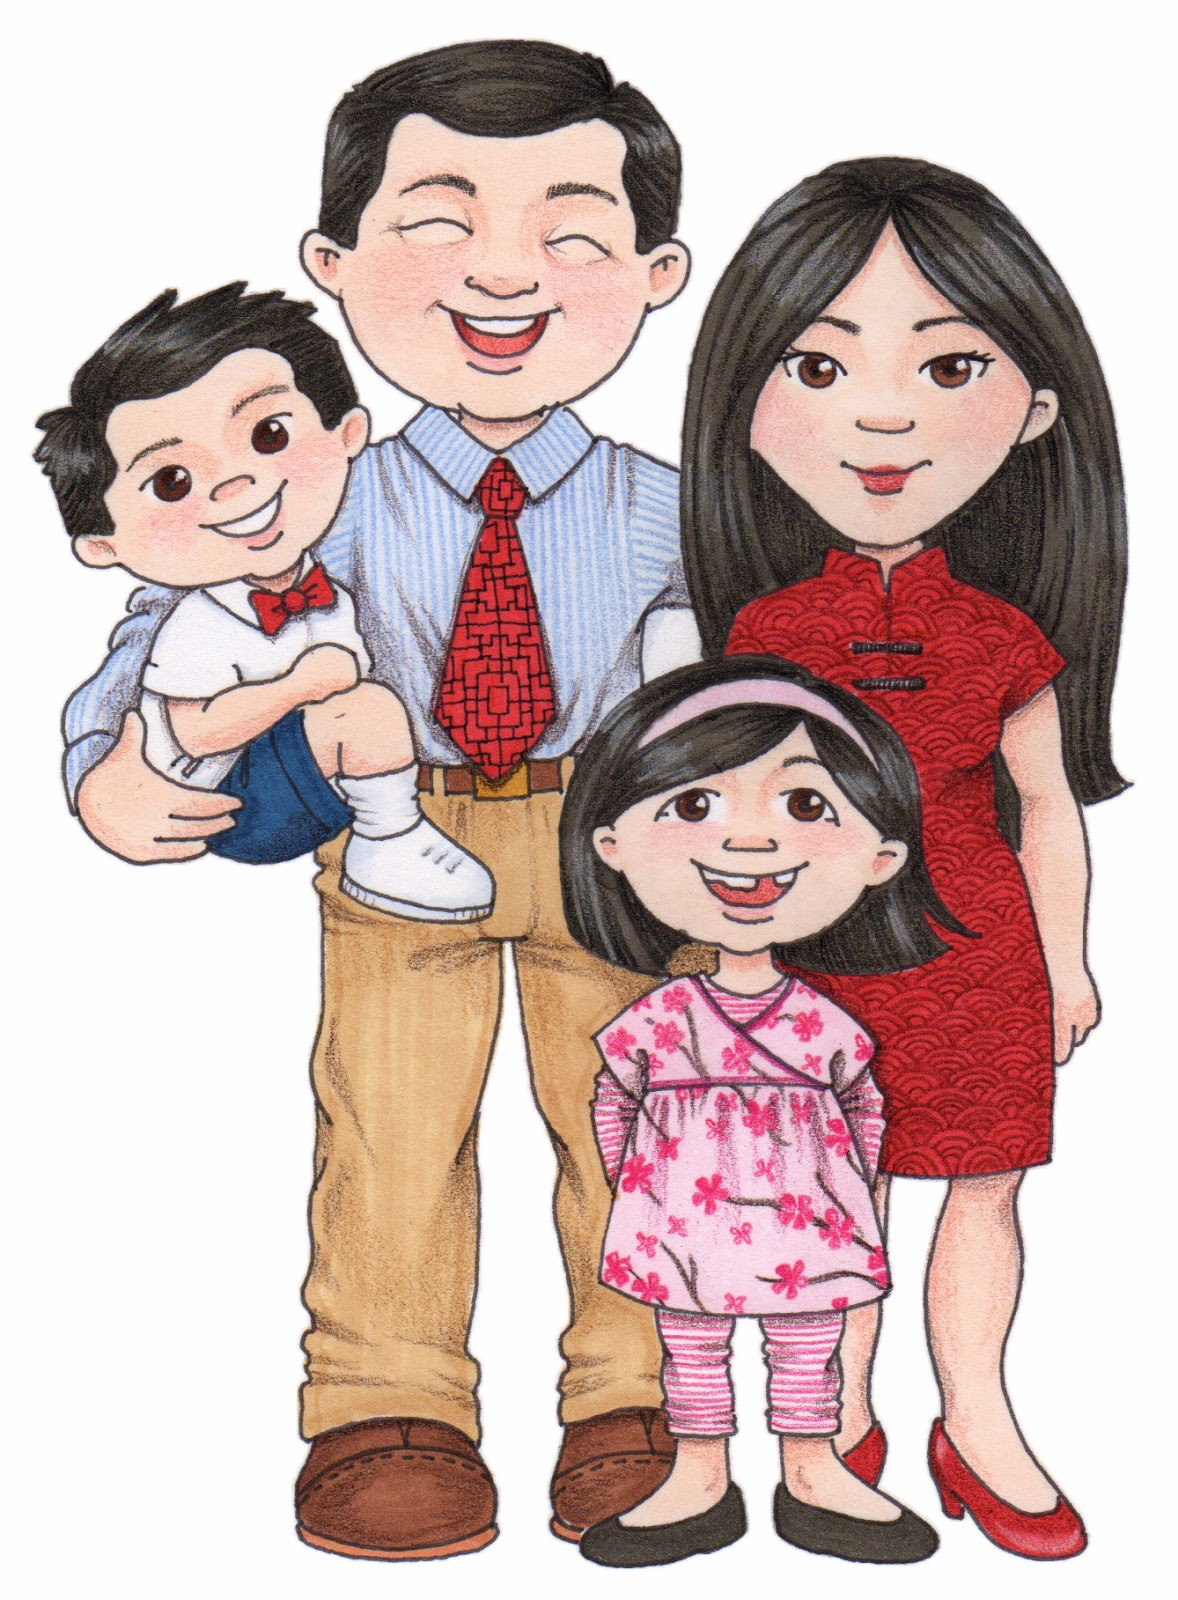 Asian clipart family member, Picture #56174 asian clipart.